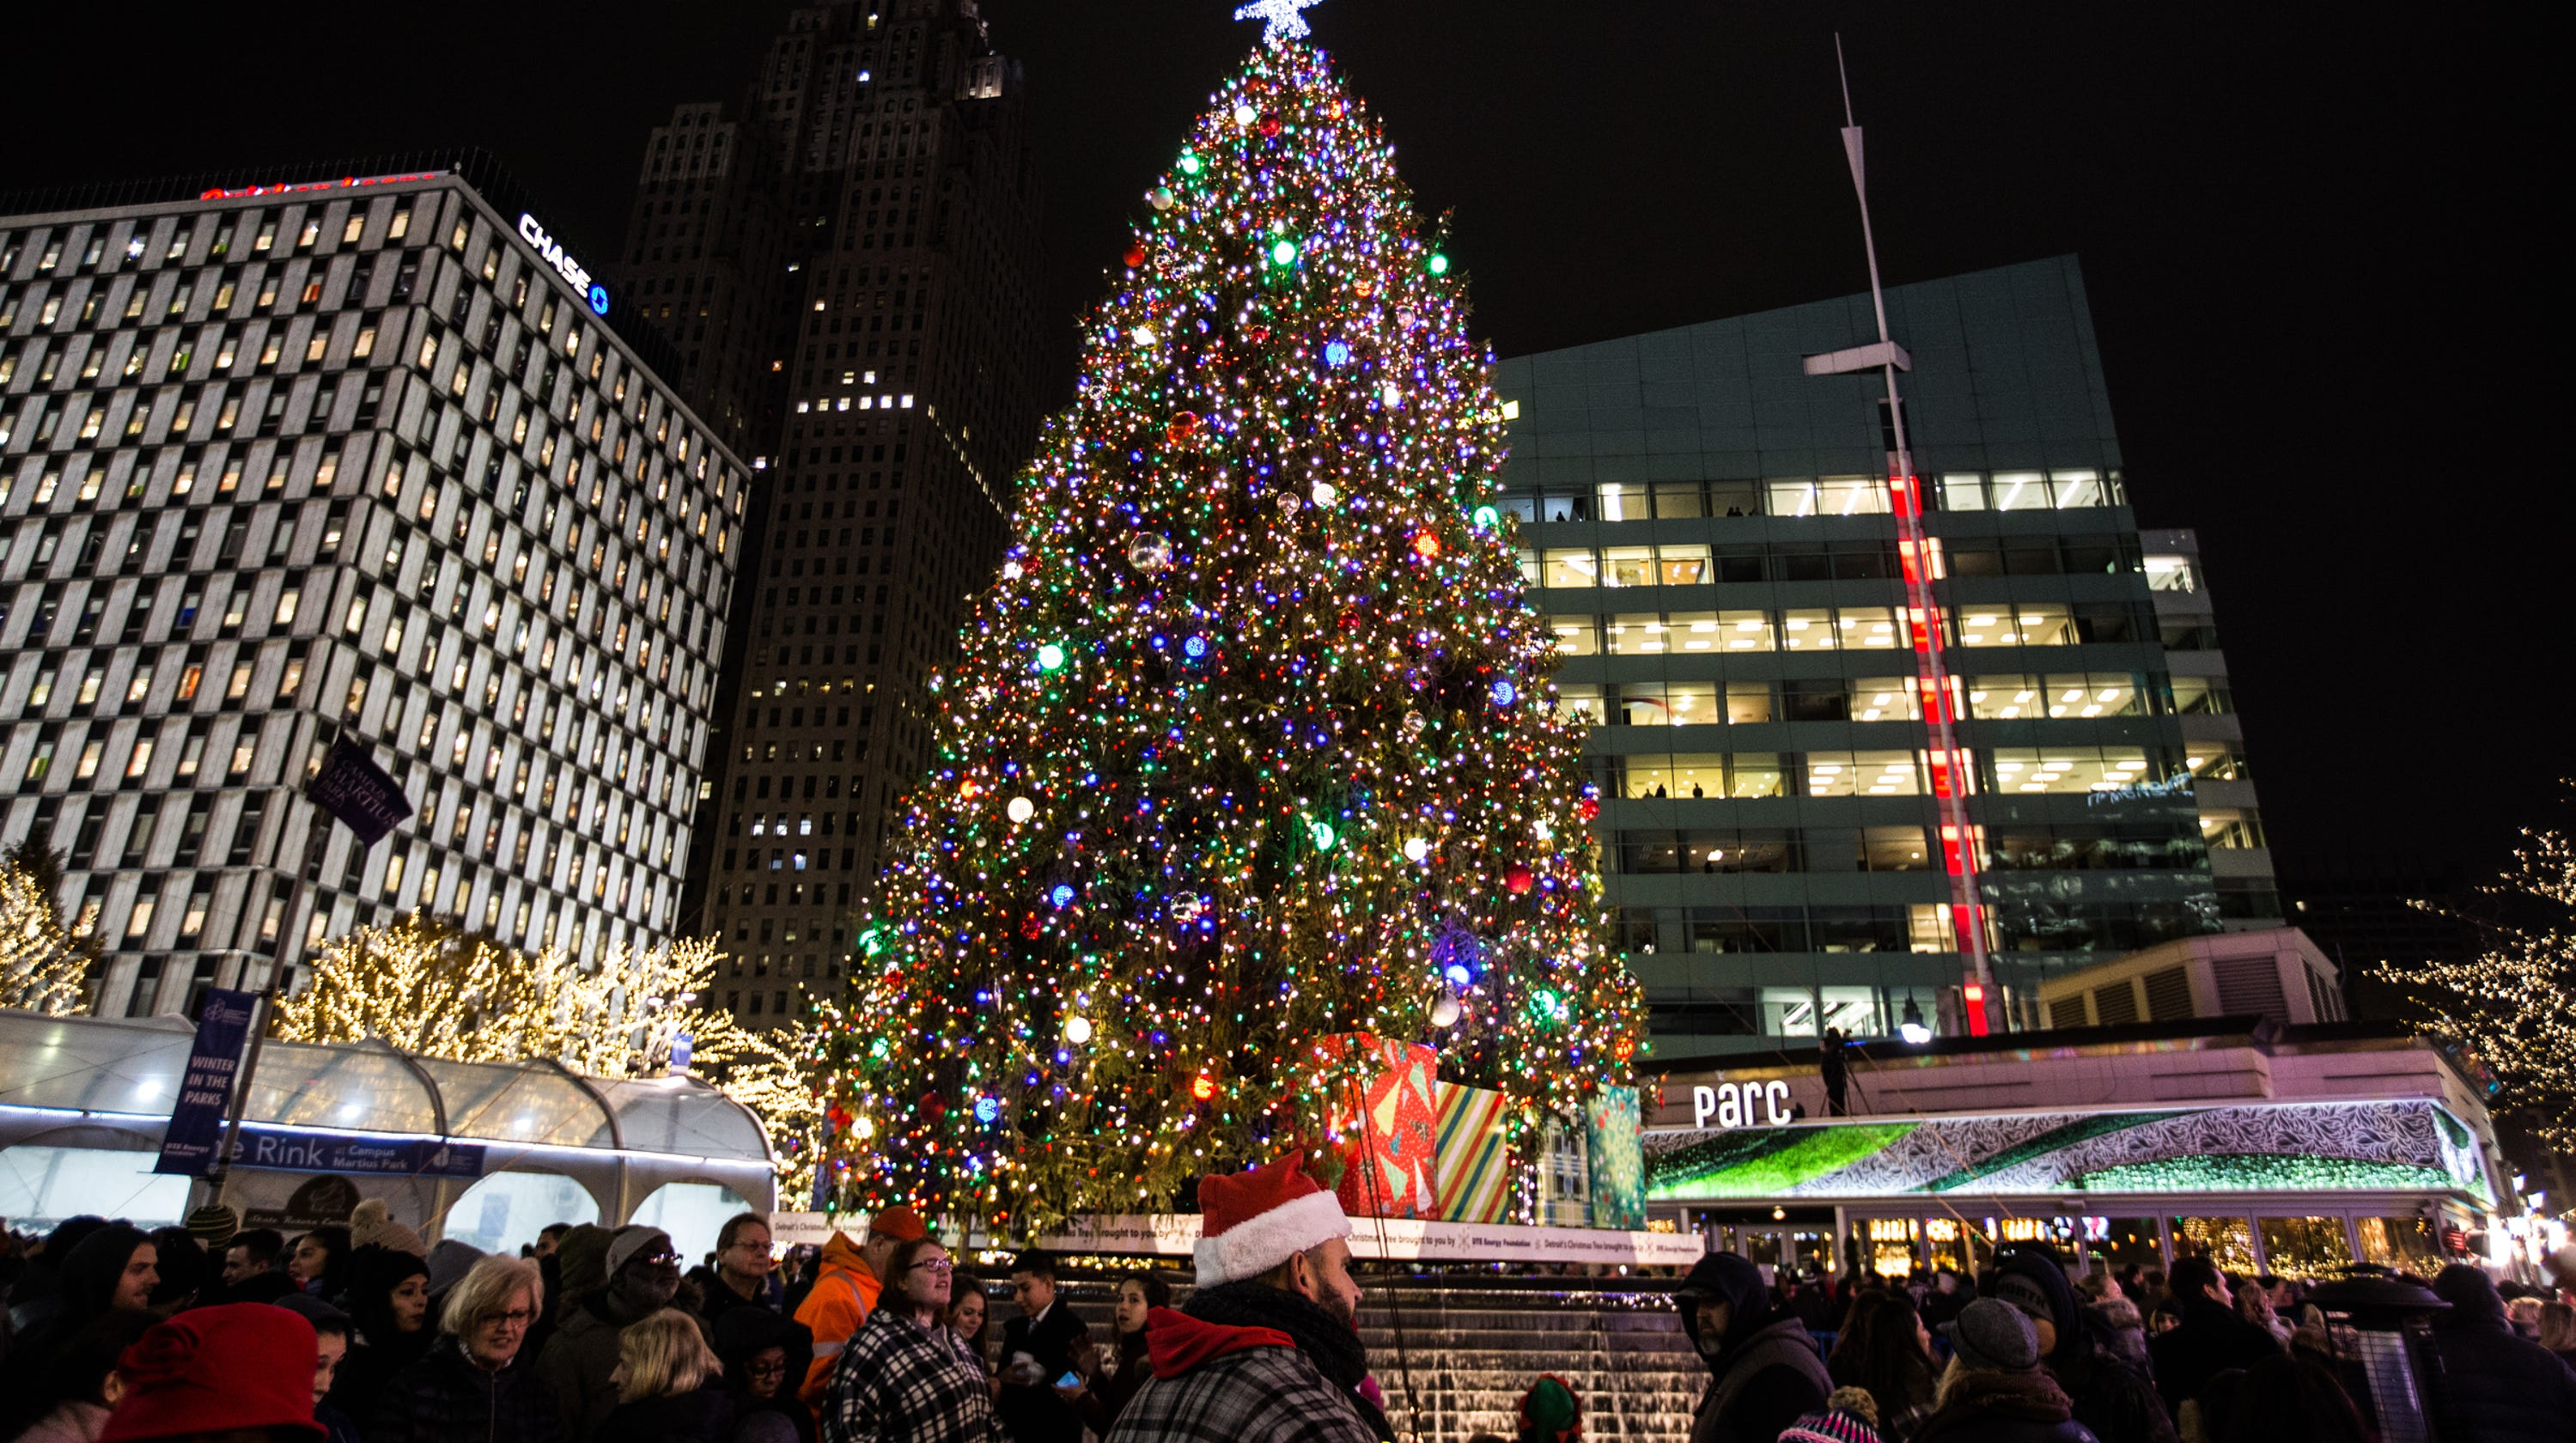 Holiday spirit fills Detroit during annual tree lighting